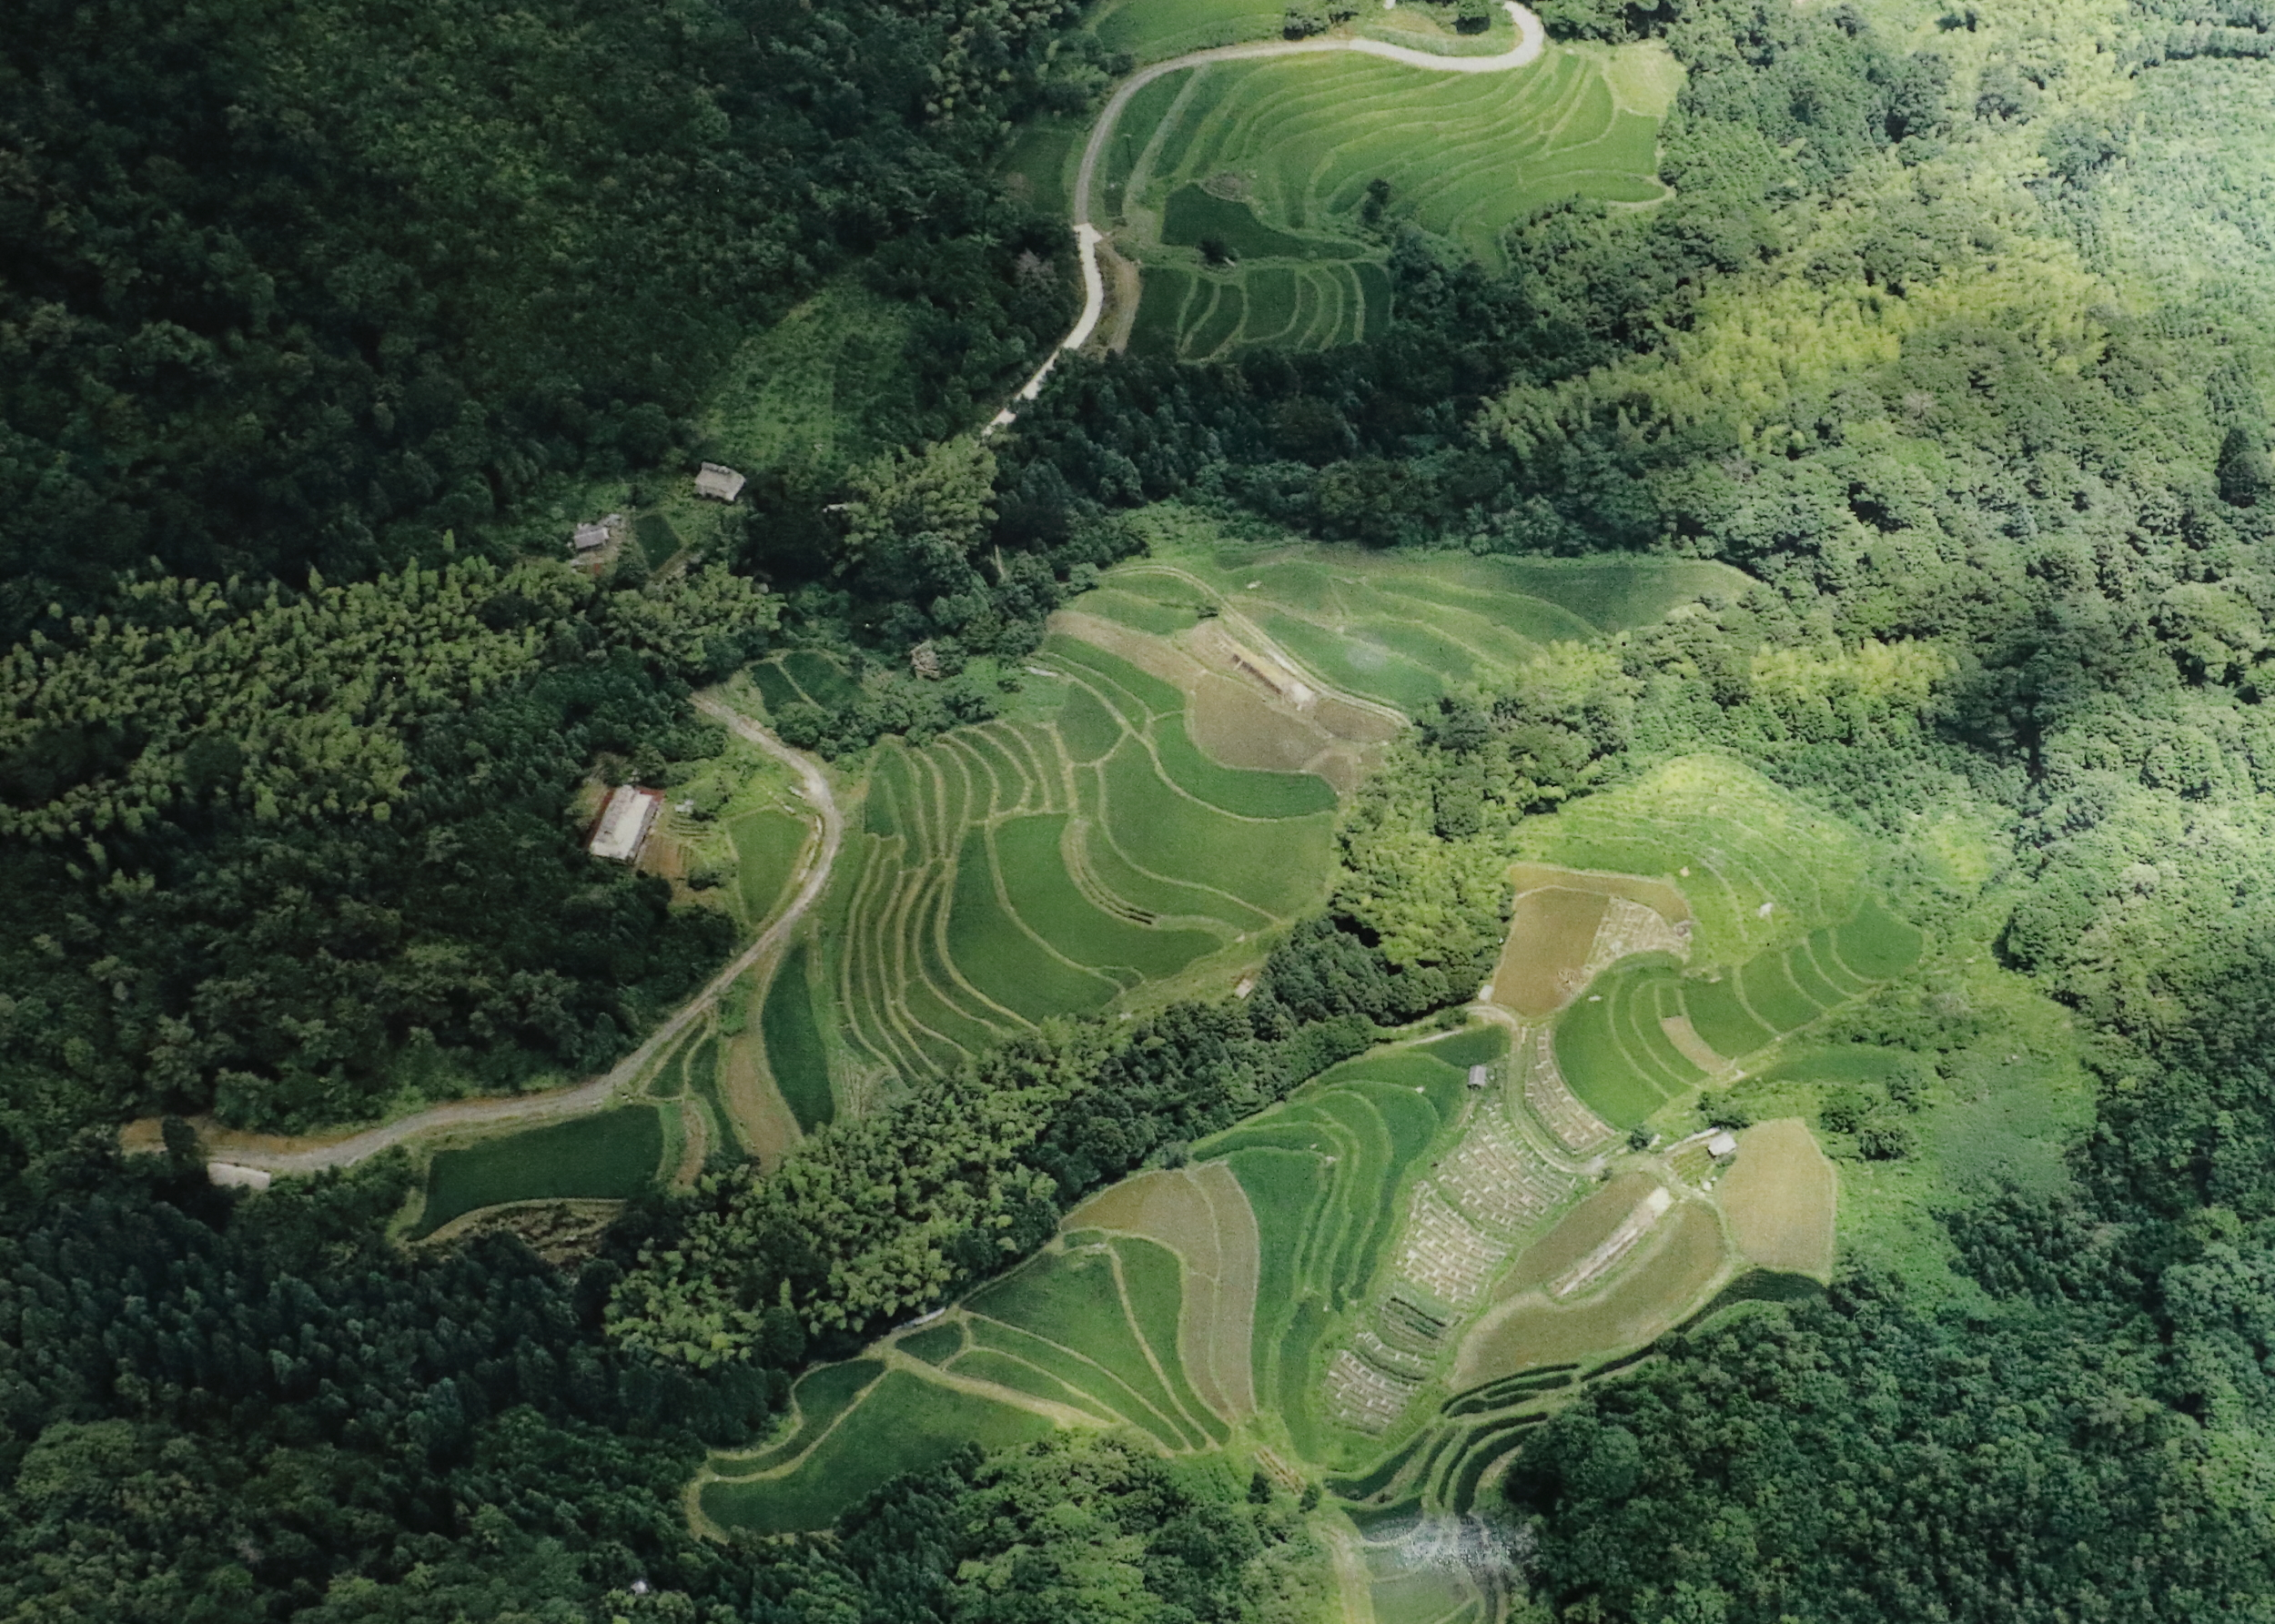 Terraced fields high in the mountains behind the fishing village where Iio Jozo grows its own rice organically with the help of volunteers.